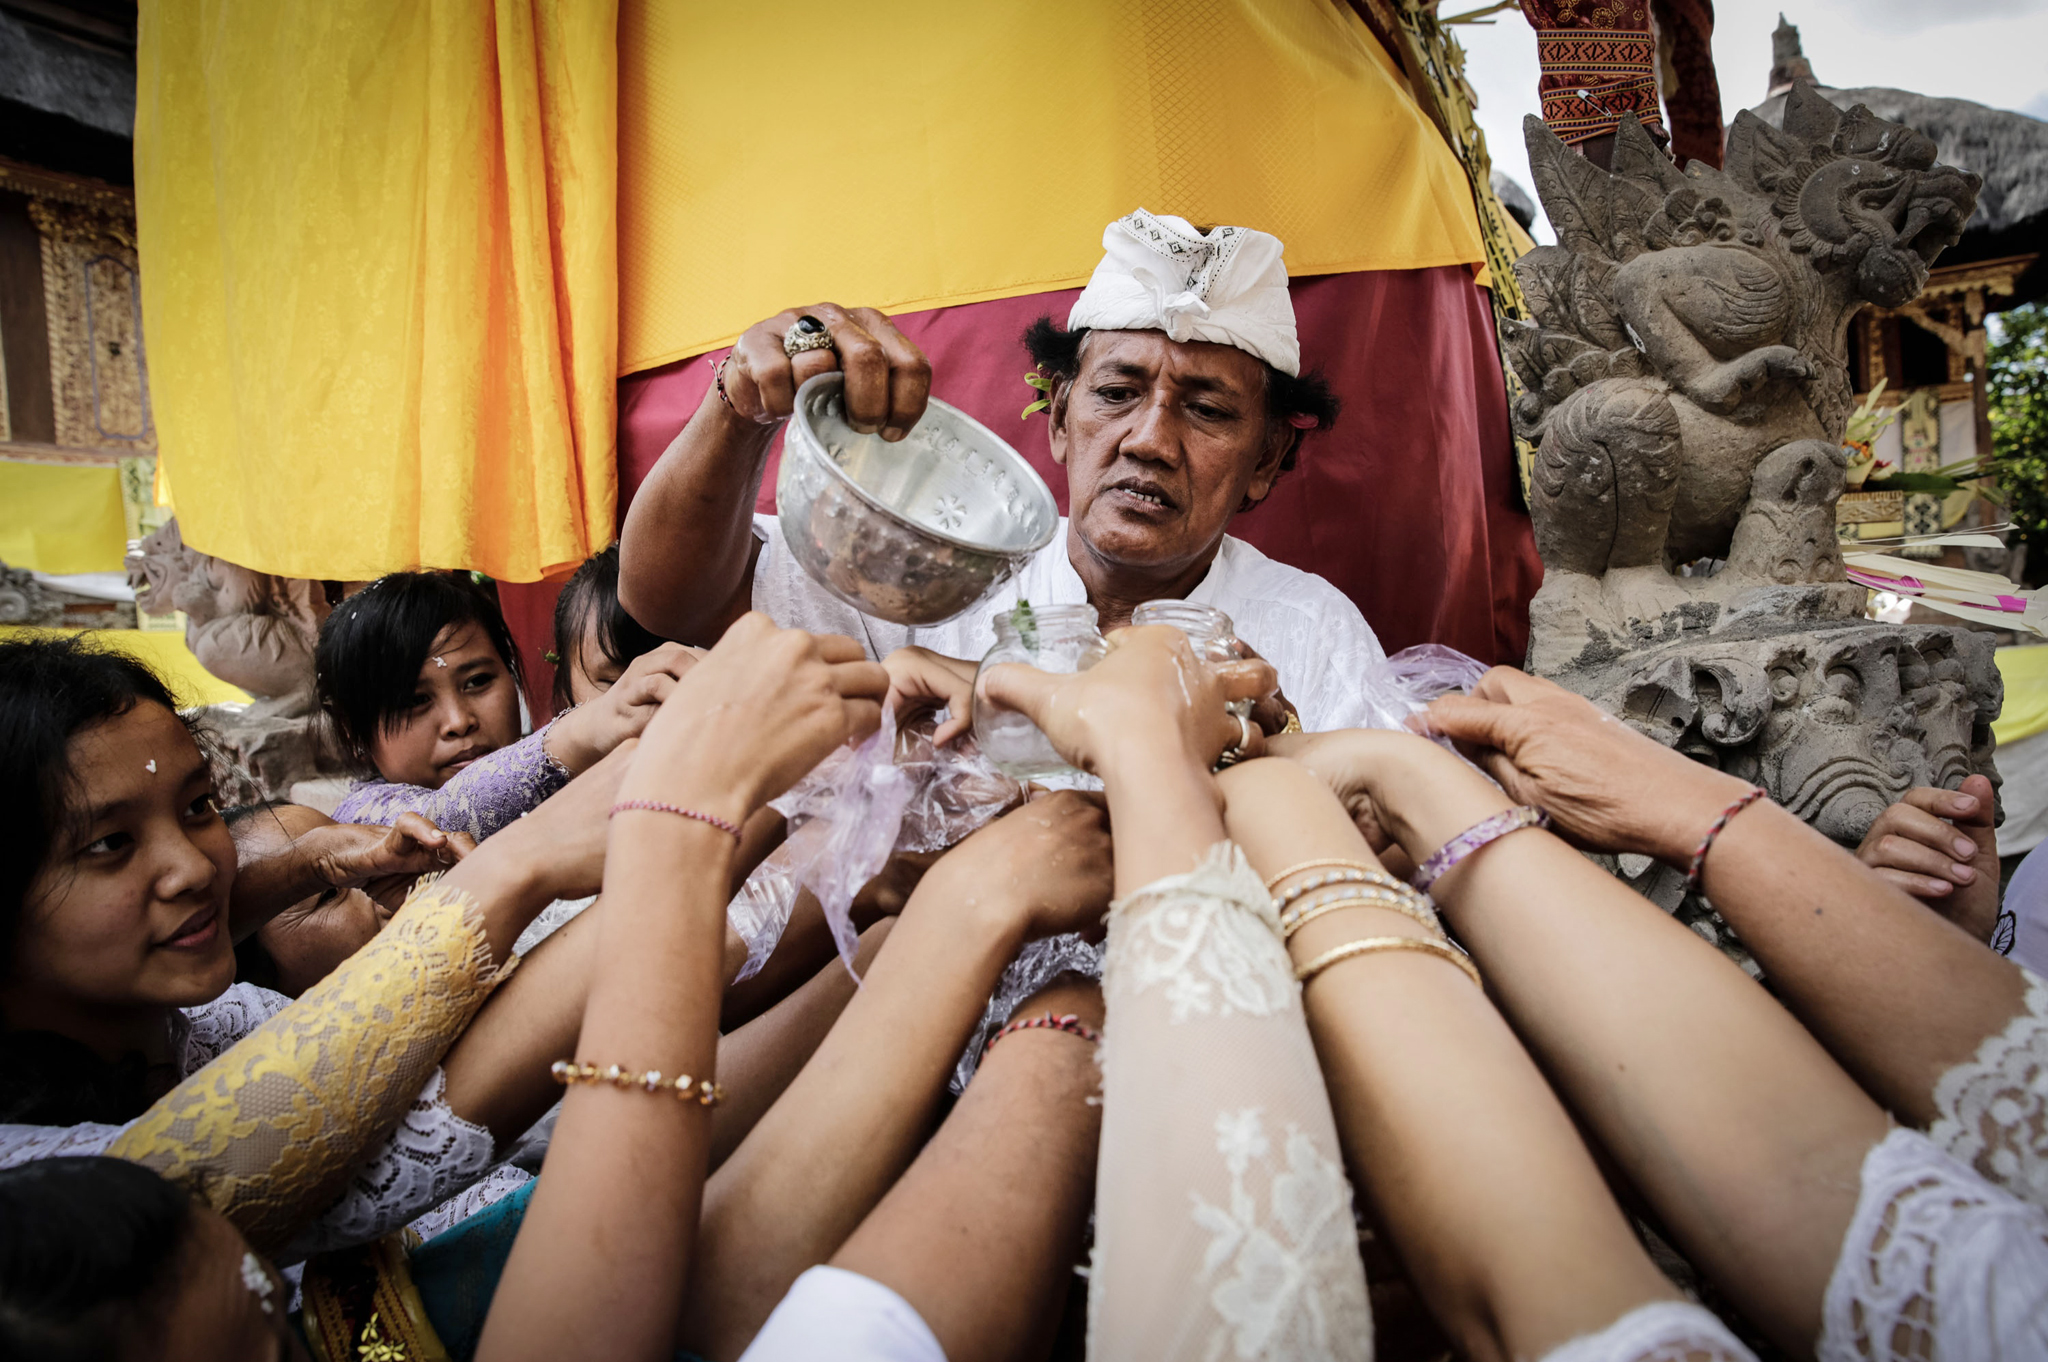 """Balinese Hindus celebrate Galungan Day...GIANYAR, BALI, INDONESIA - MAY 21:  A Balinese Hindus man pours holy water for belivers during they celebrate Galungan Day at a temple on May 21, 2014 in Gianyar, Bali, Indonesia. Galungan is an important feast for Balinese Hindus which is held every 210 days according to the Balinese calendar, to honor the creator of the universe and the spirits of the honored ancestors. The festival symbolize the victory of """"dharma"""", or truth, above """"adharma"""", or evil.  (Photo by Agung Parameswara/Getty Images)"""